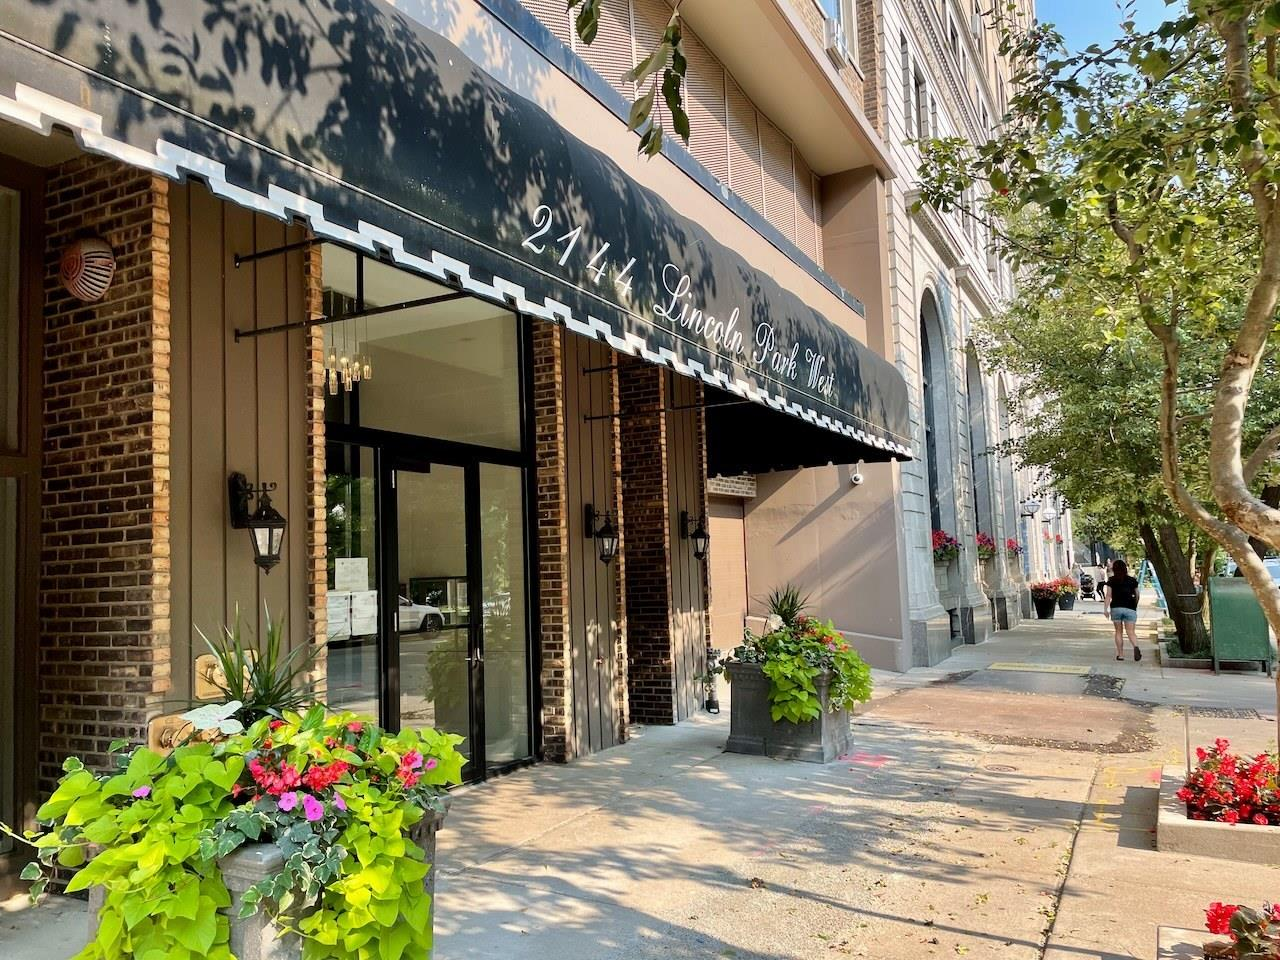 2144 N LINCOLN PARK W Parkway #26A, Chicago, IL 60614 - #: 11059204